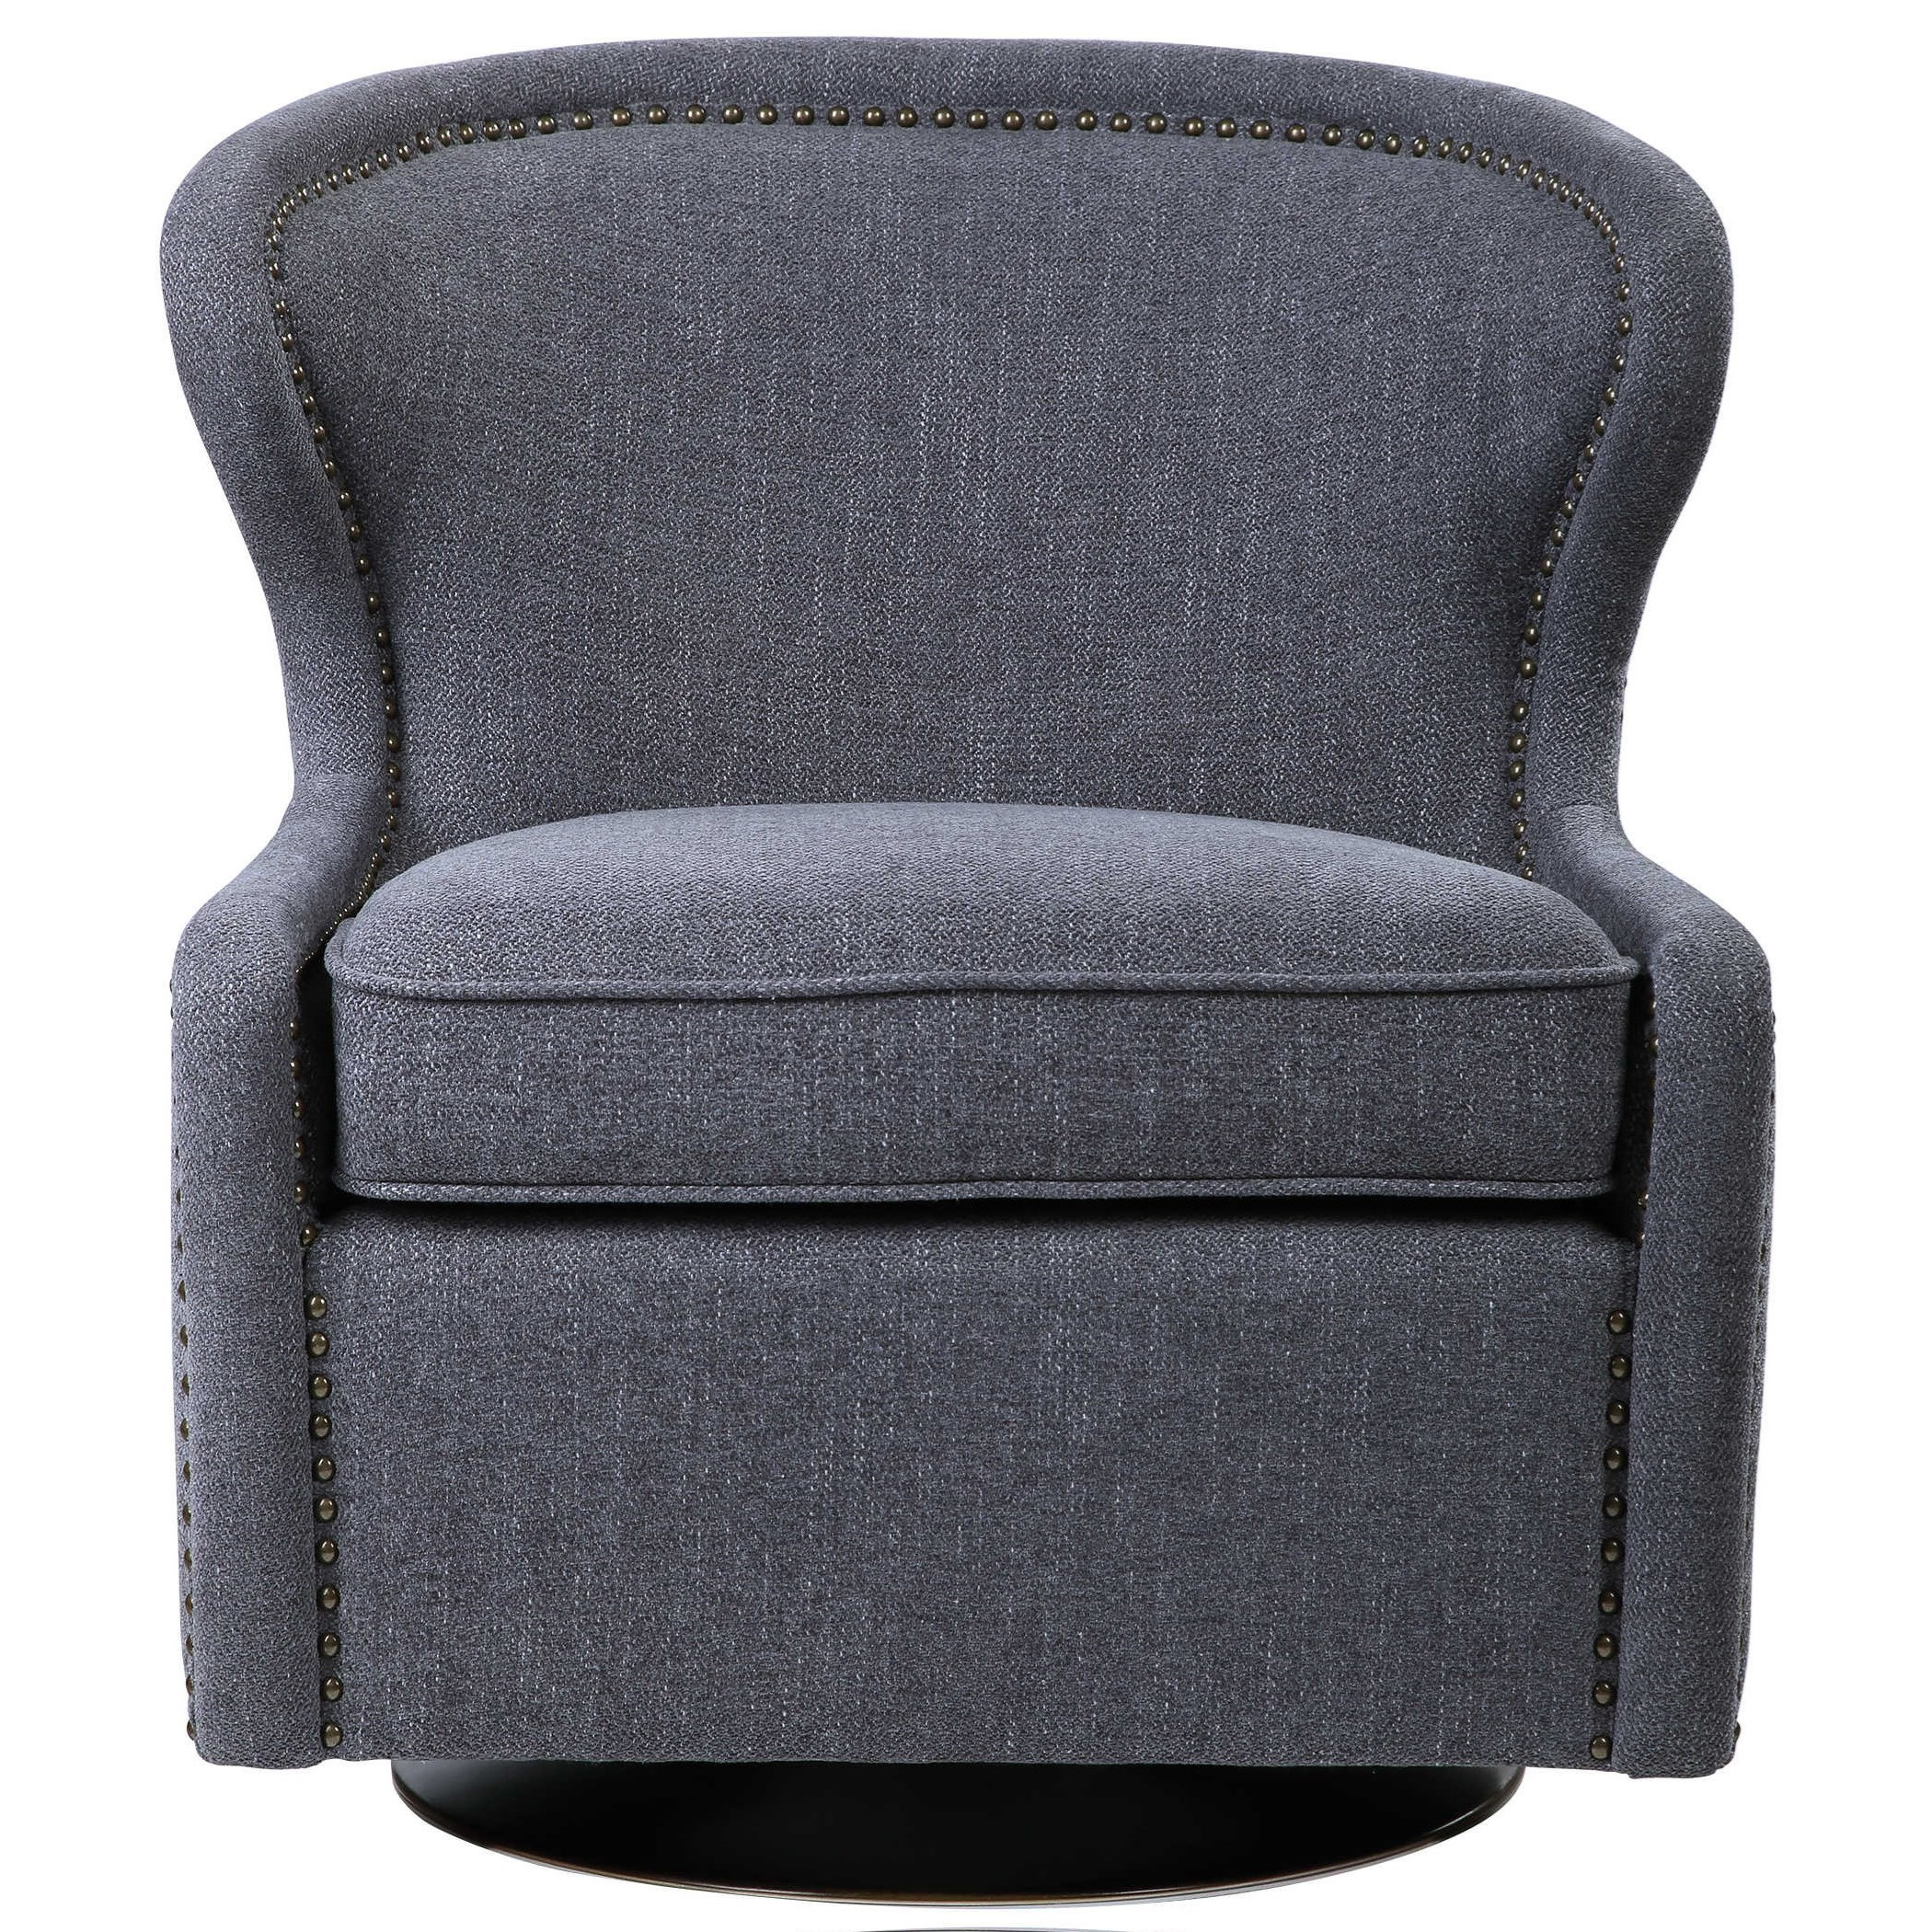 Accent Furniture - Accent Chairs Biscay Swivel Chair by Uttermost at Mueller Furniture